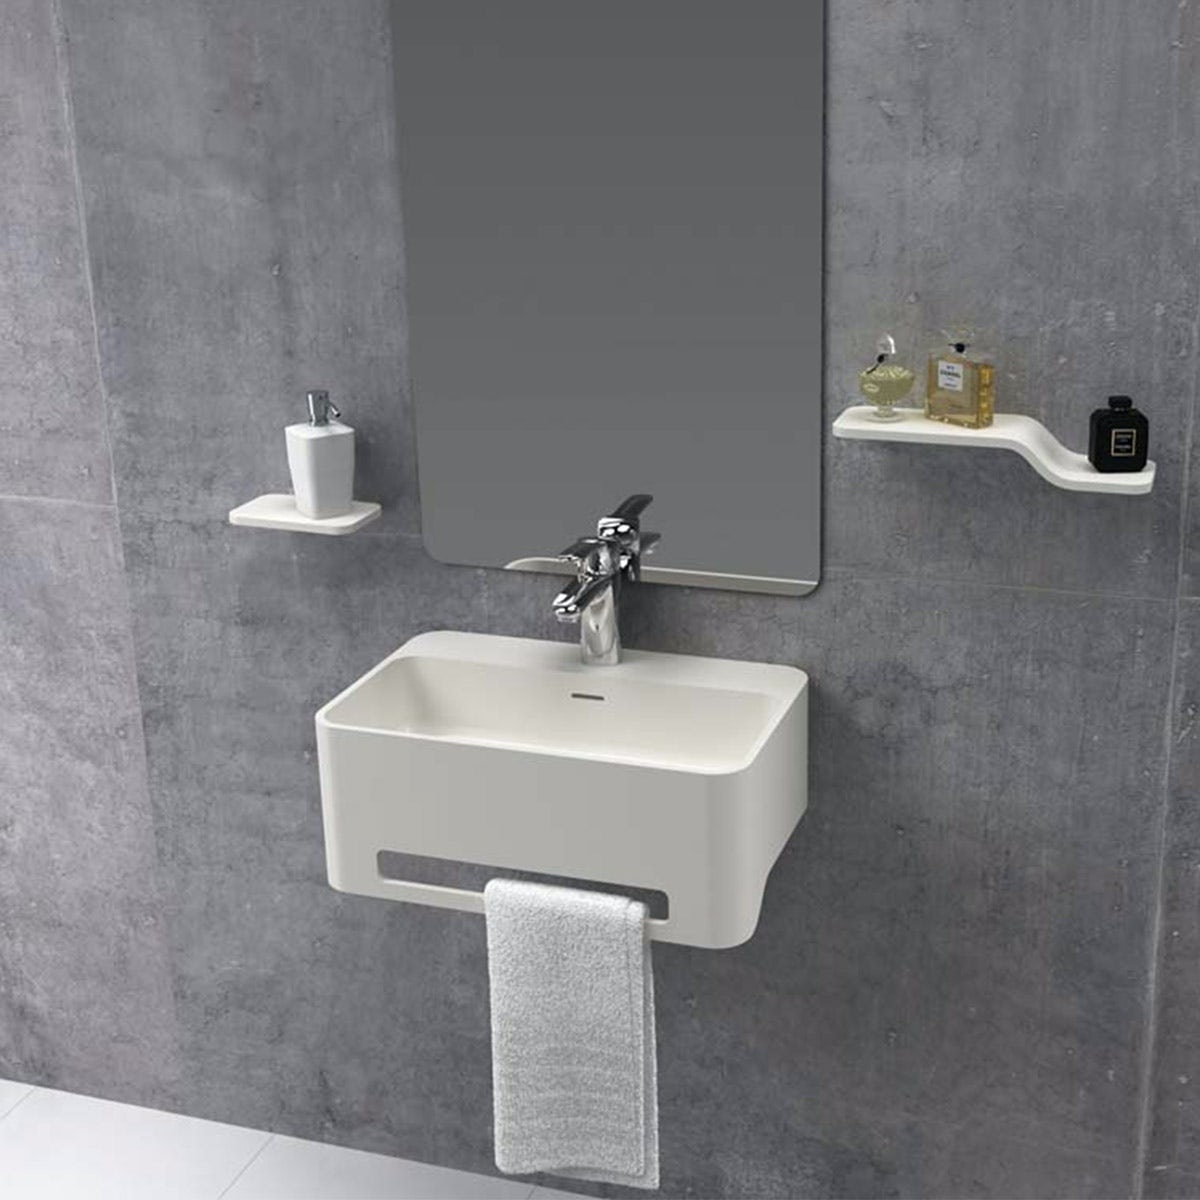 Belle de Louvain Carpi 1 tap hole solid surface stone resin wall hung basin 500mm with waste and chrome trap